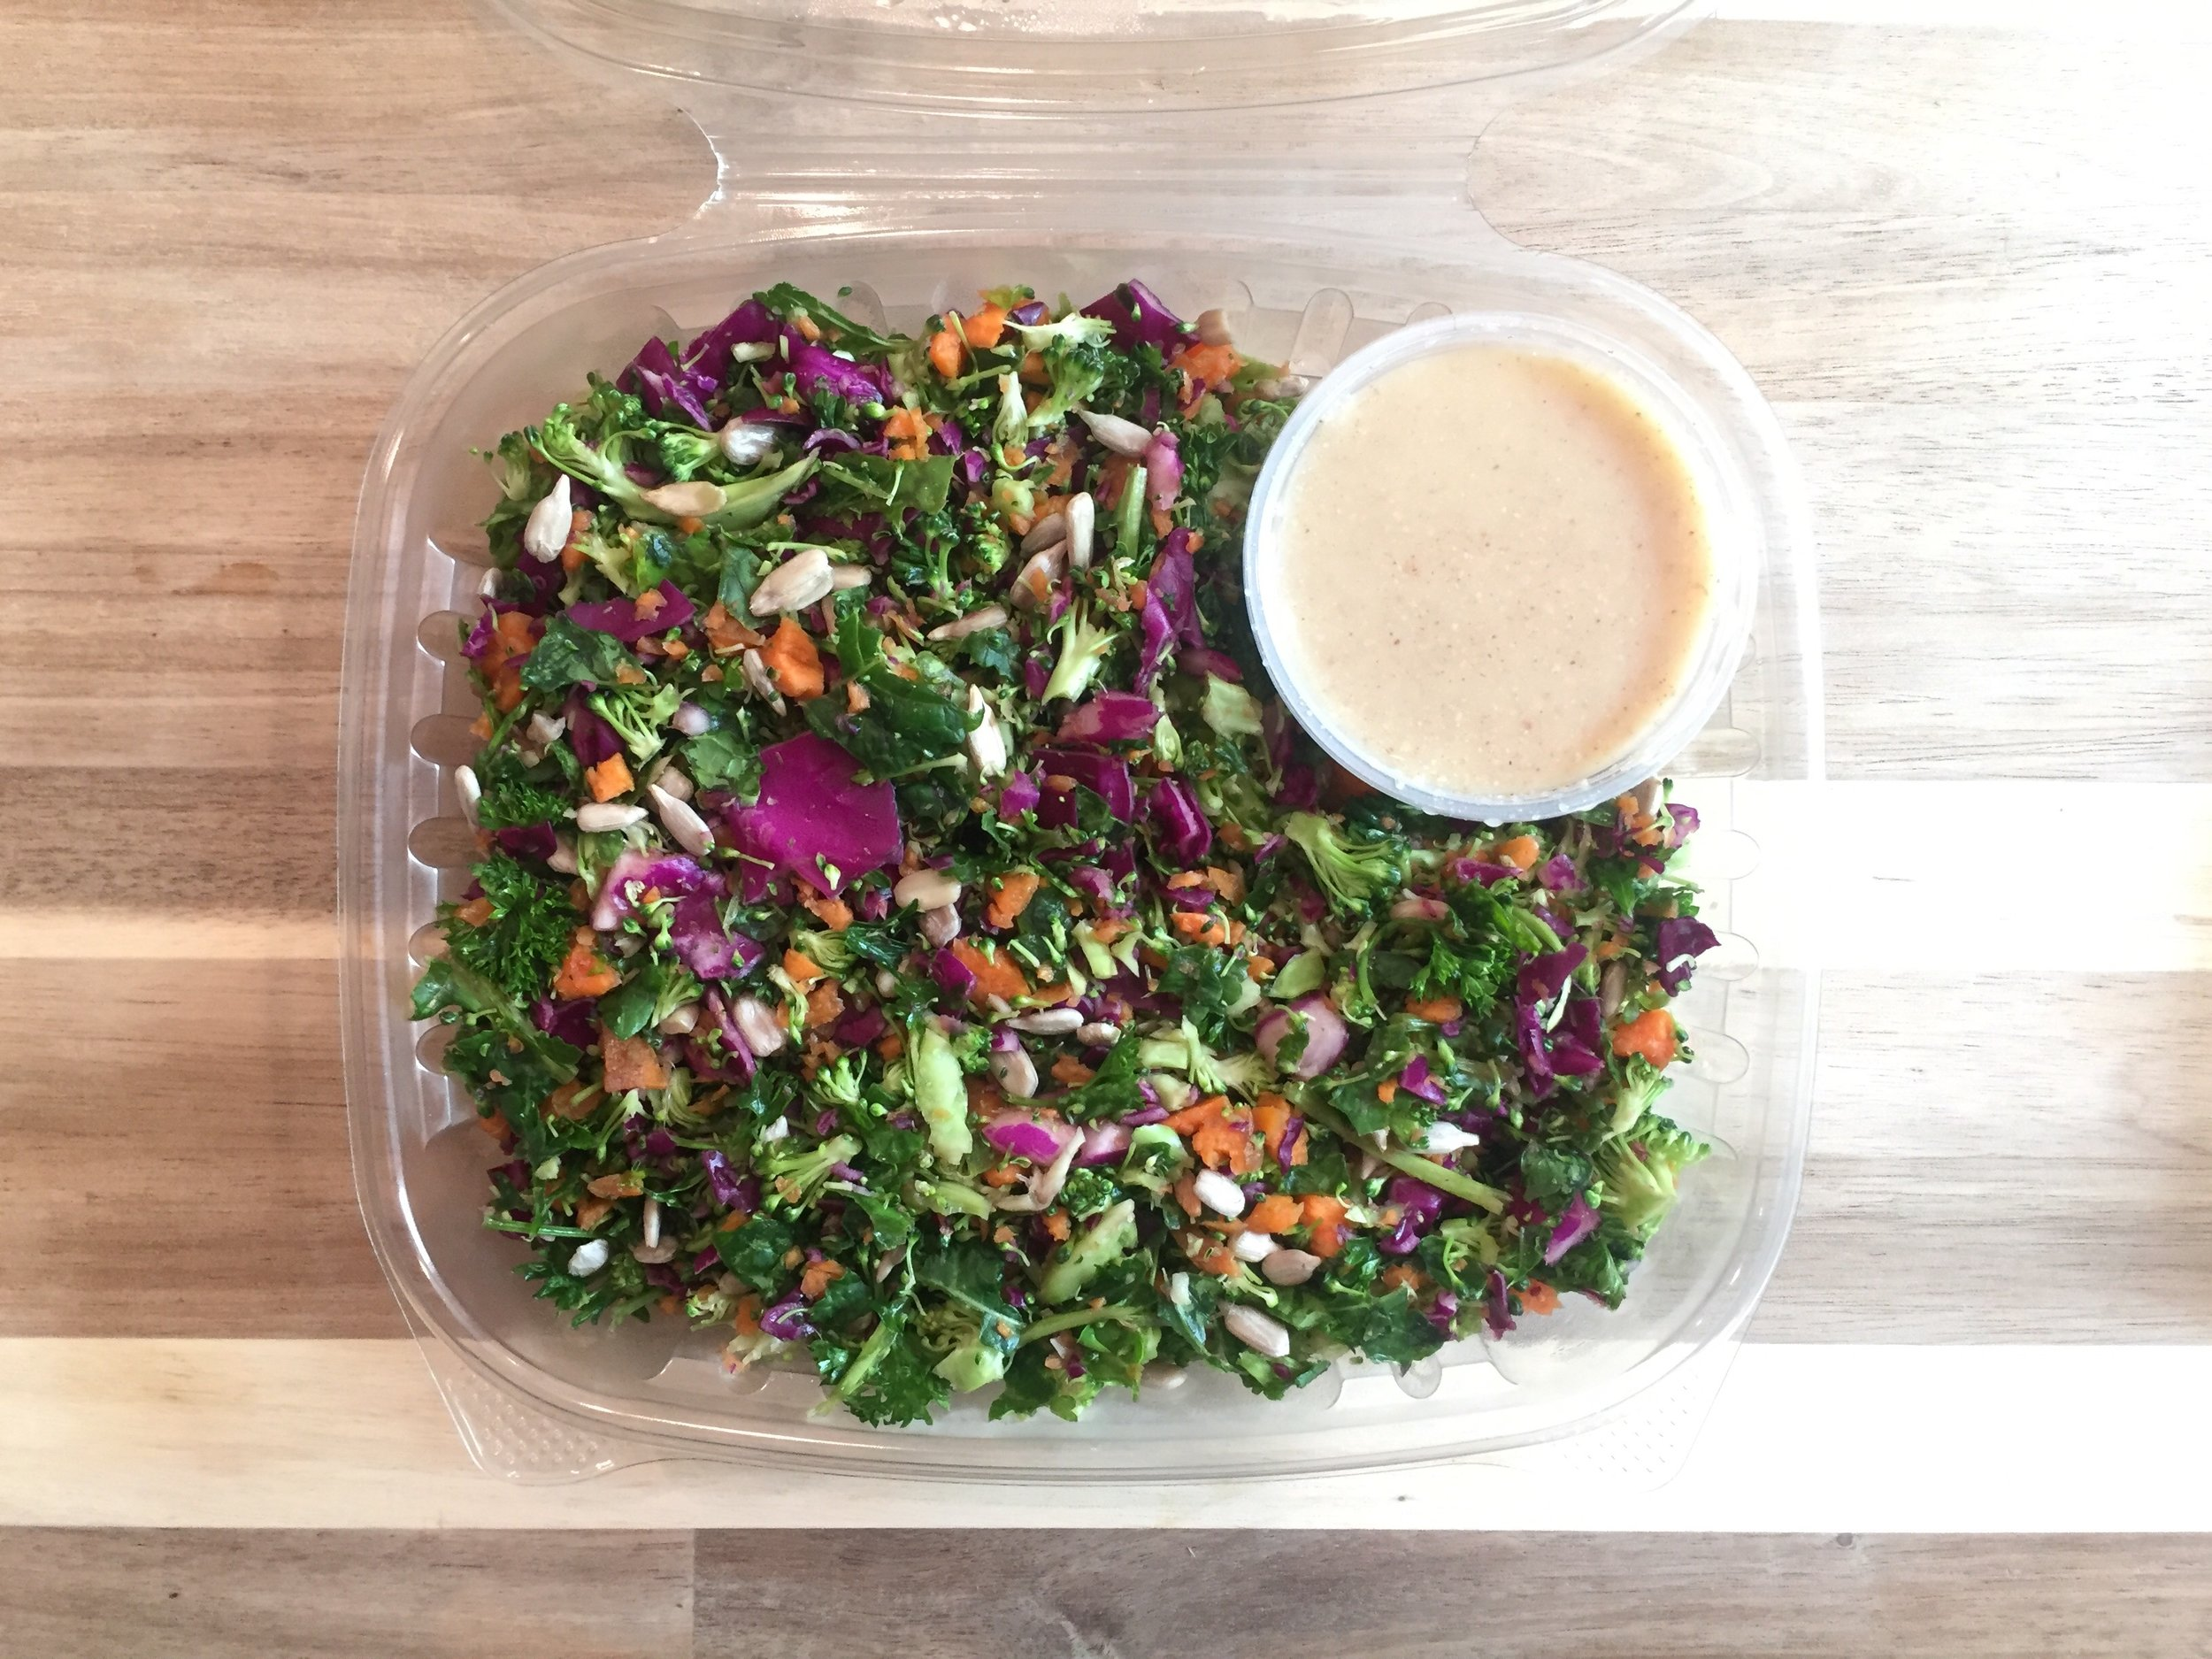 Raw Rainbow Salad - Broccoli, kale, cabbage, carrots, sunflower seeds, with lemon ginger dressing.